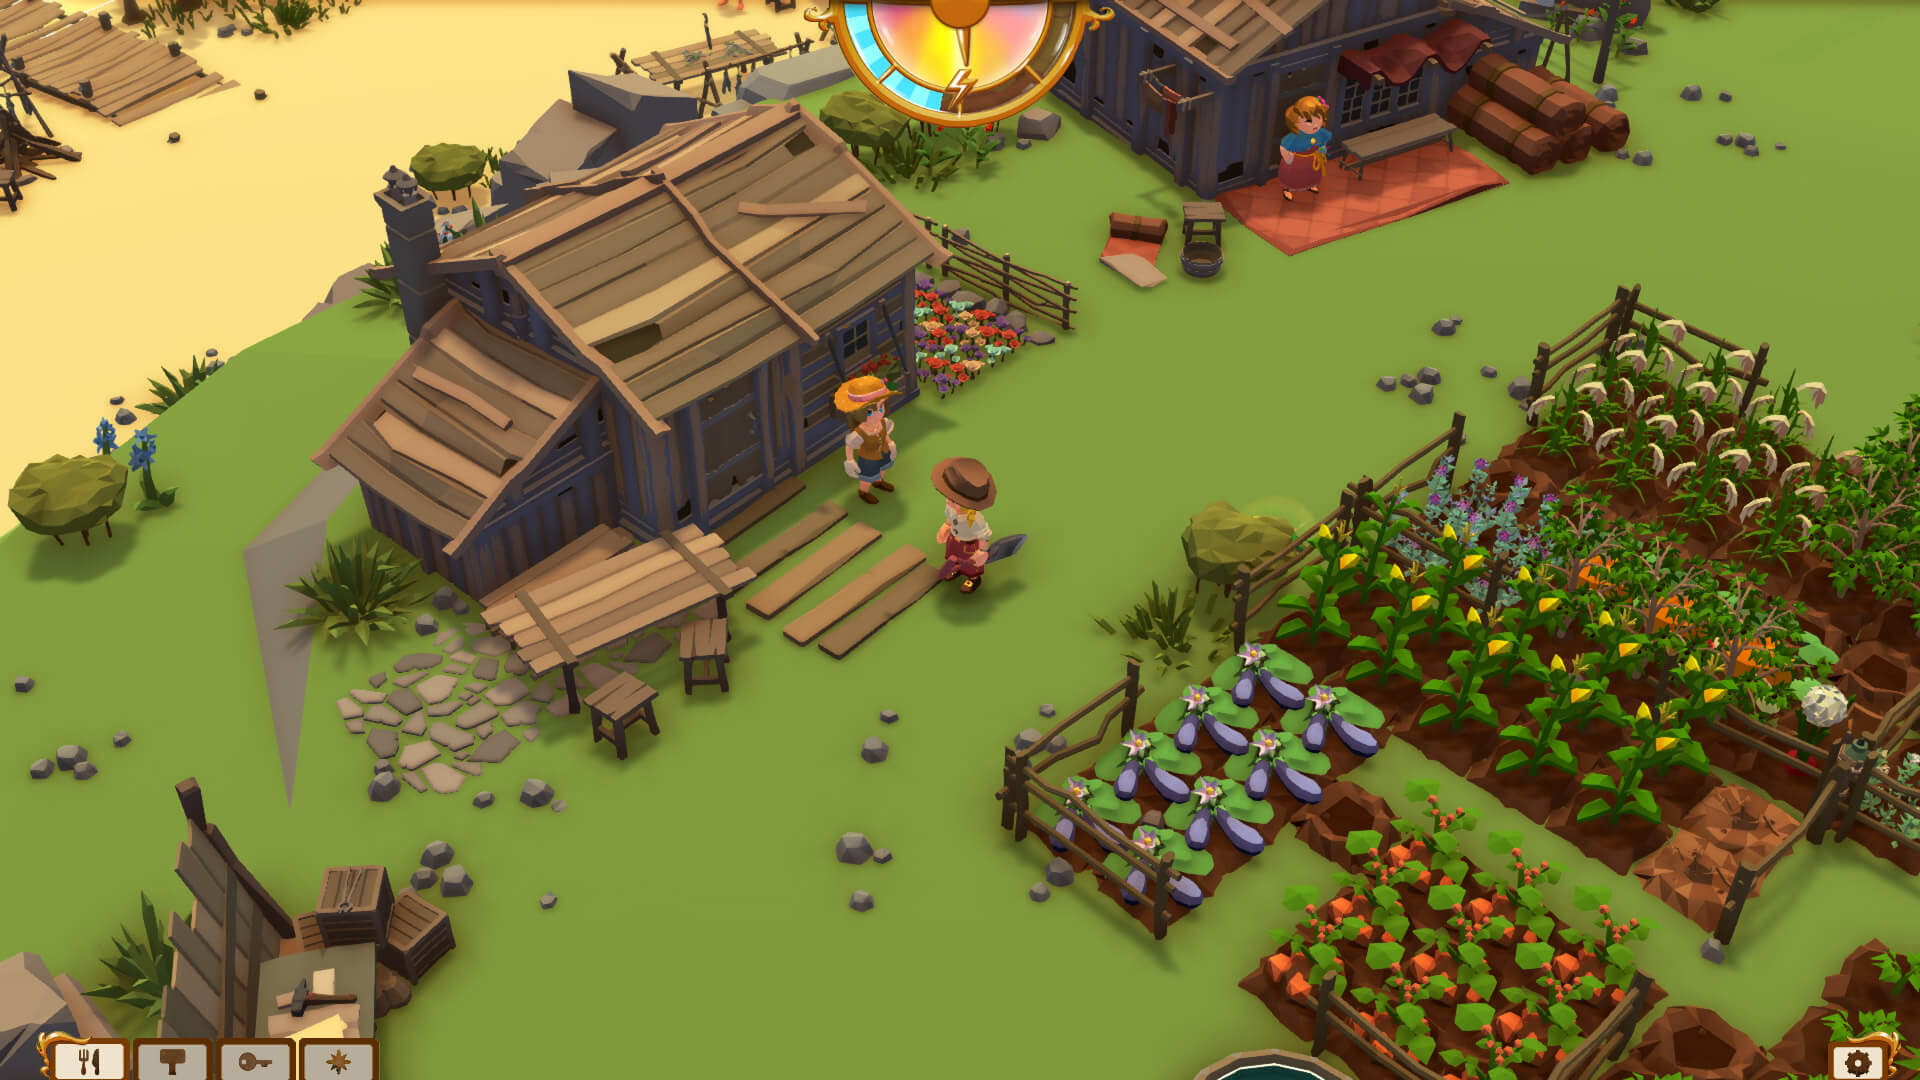 Surviving the wild? Check out my farm